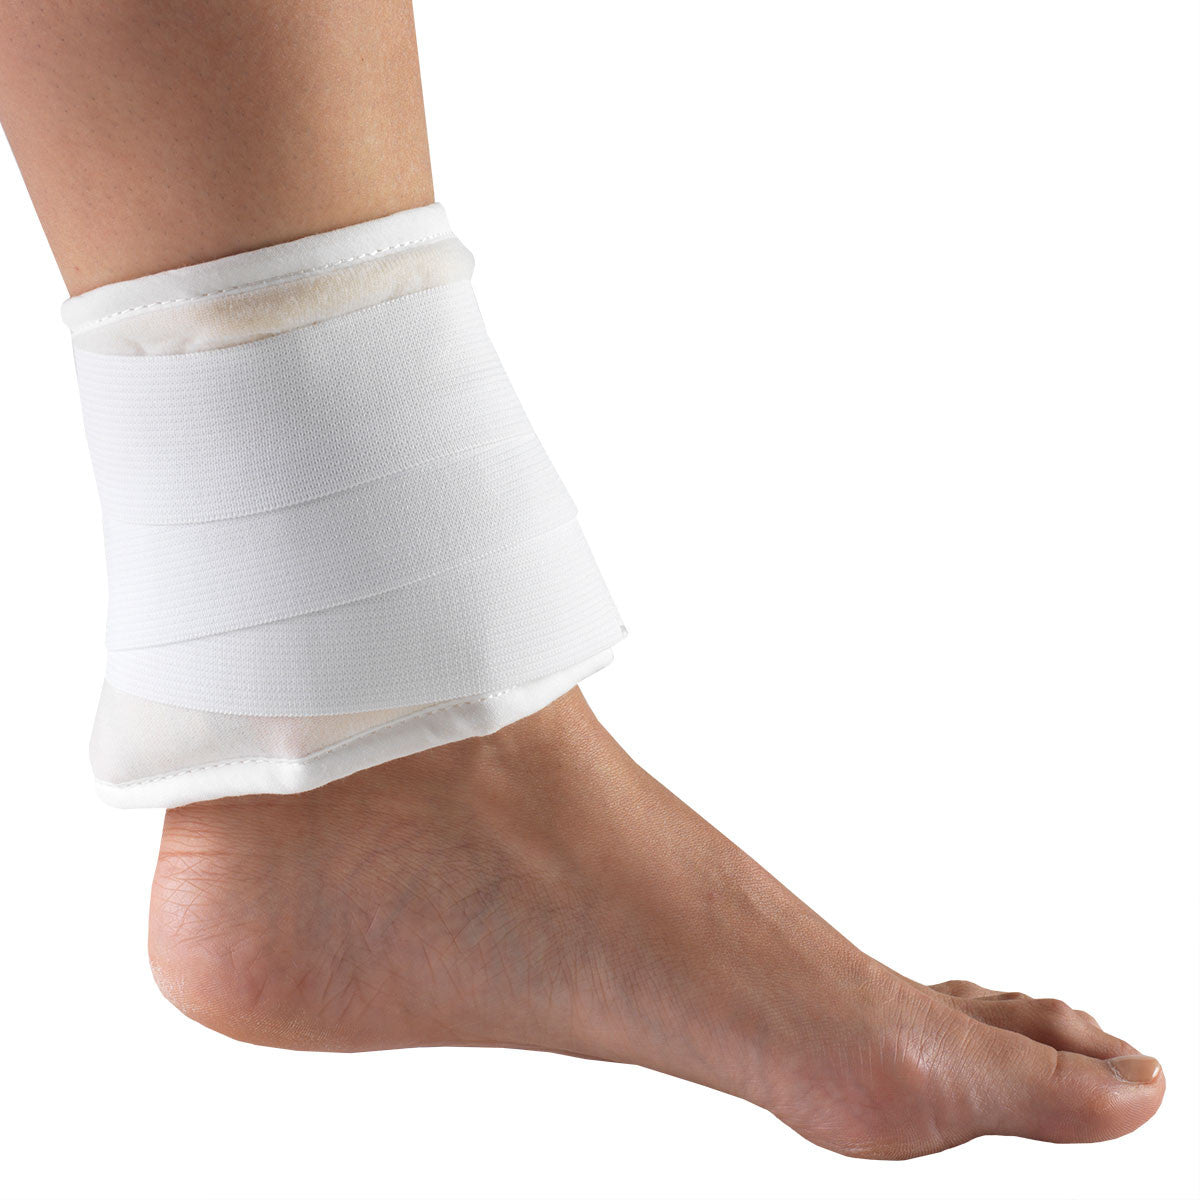 THERMA-KOOL REUSABLE HOT & COLD COMPRESS ON ANKLE